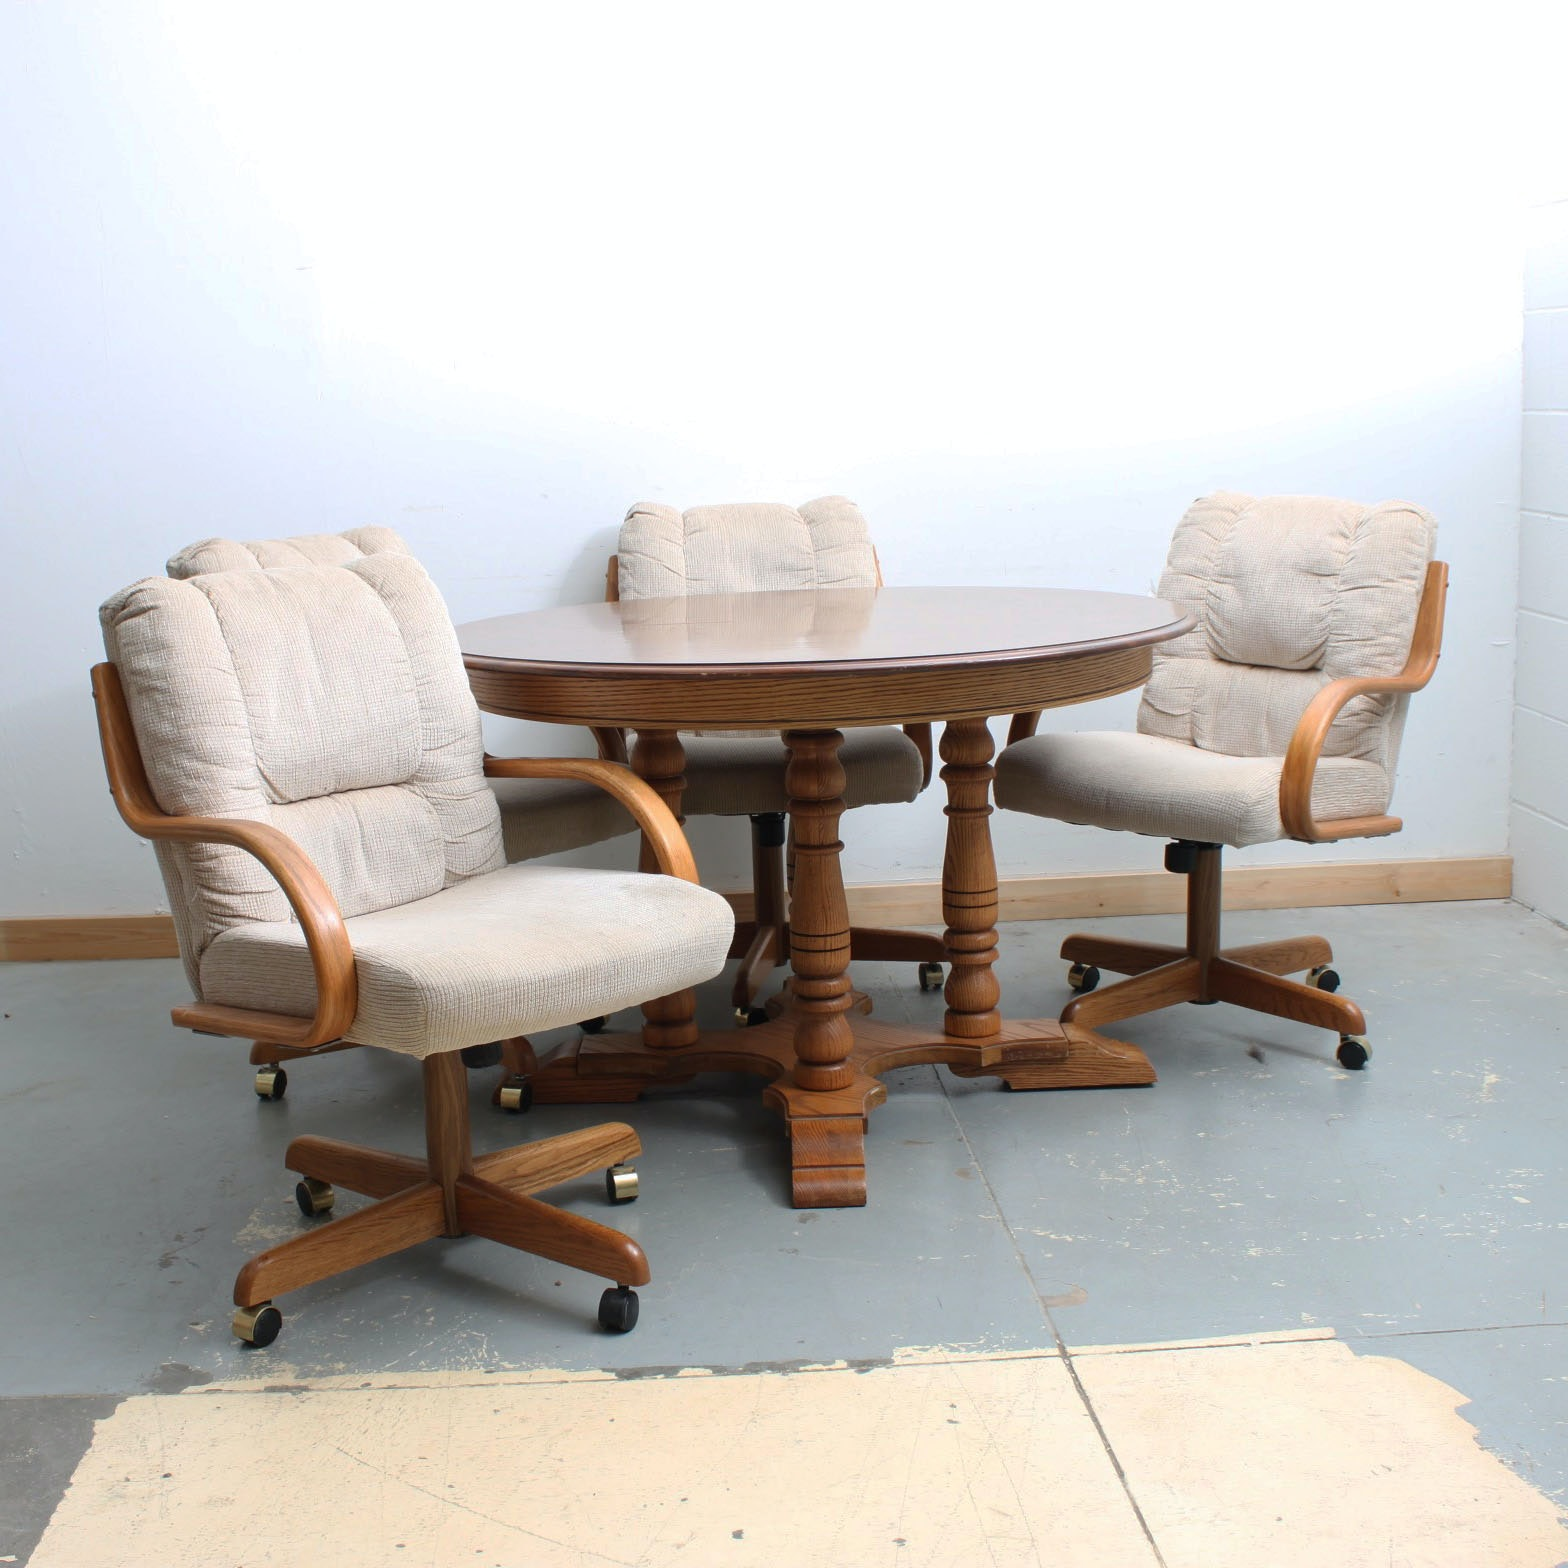 Pedestal Table and Four Rolling Armchairs